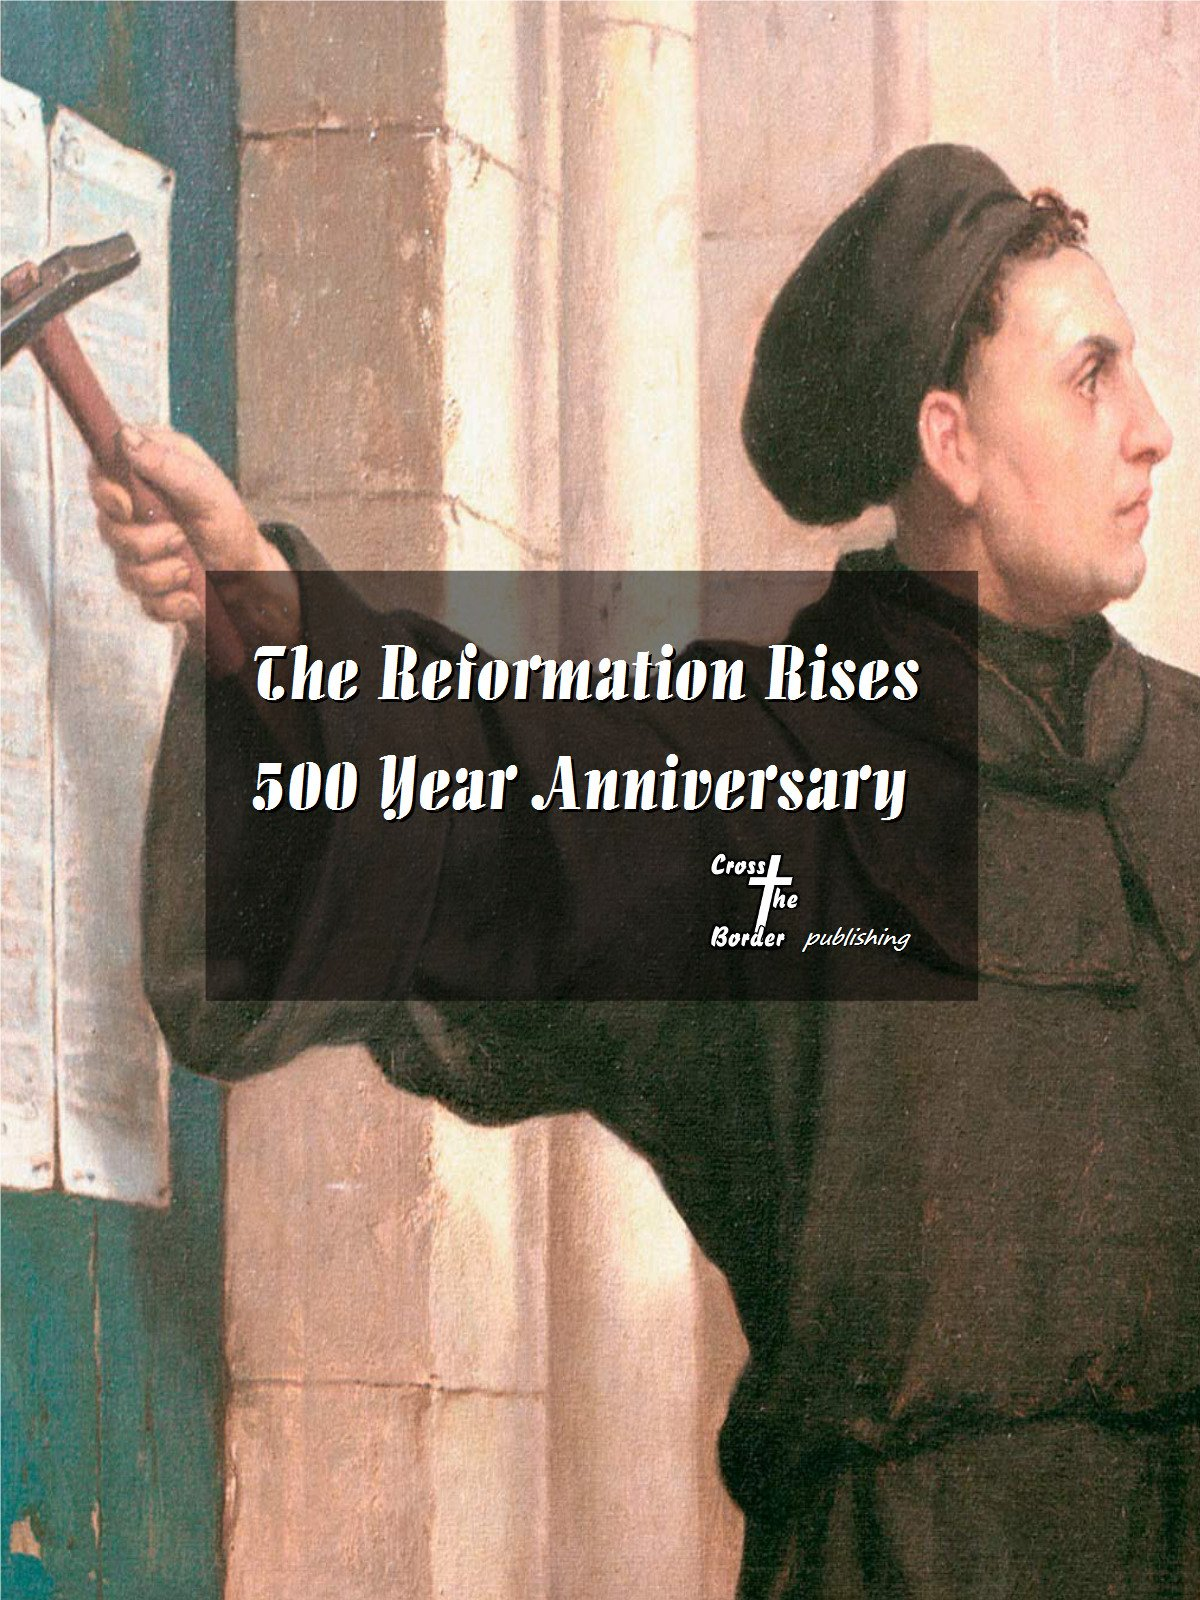 The Reformation Rises, 500 Year Anniversary